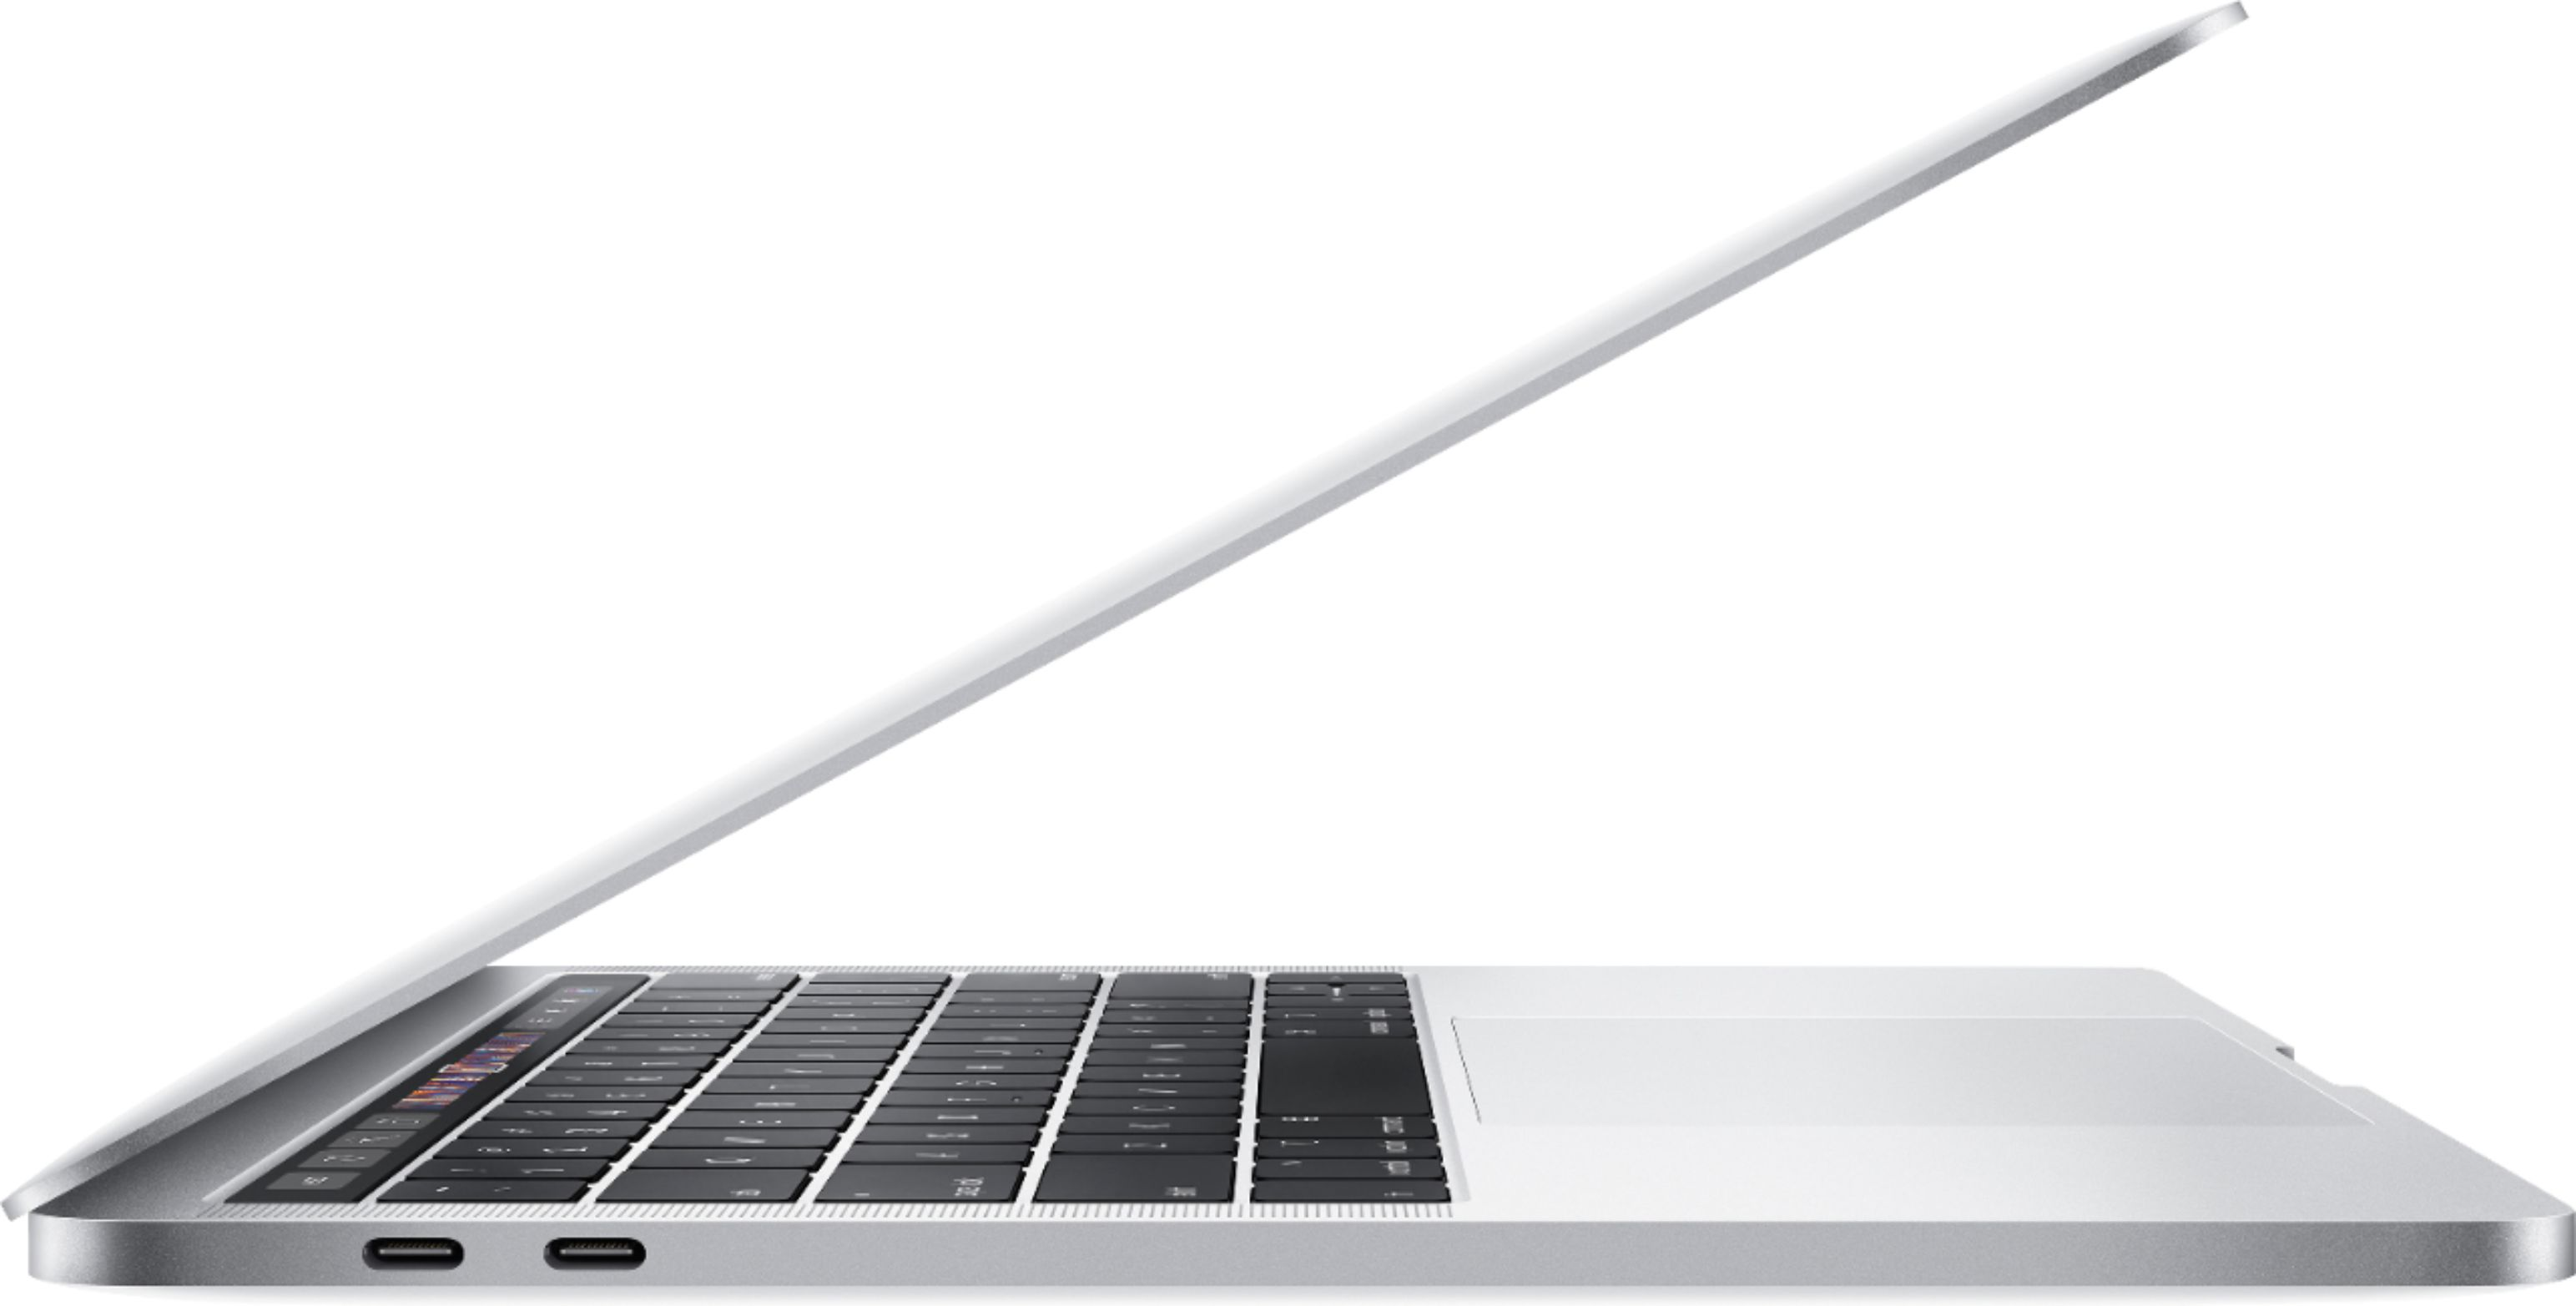 """Alt View Zoom 11. Apple - MacBook Pro - 13"""" Display with Touch Bar - Intel Core i5 - 8GB Memory - 512GB SSD - Silver."""